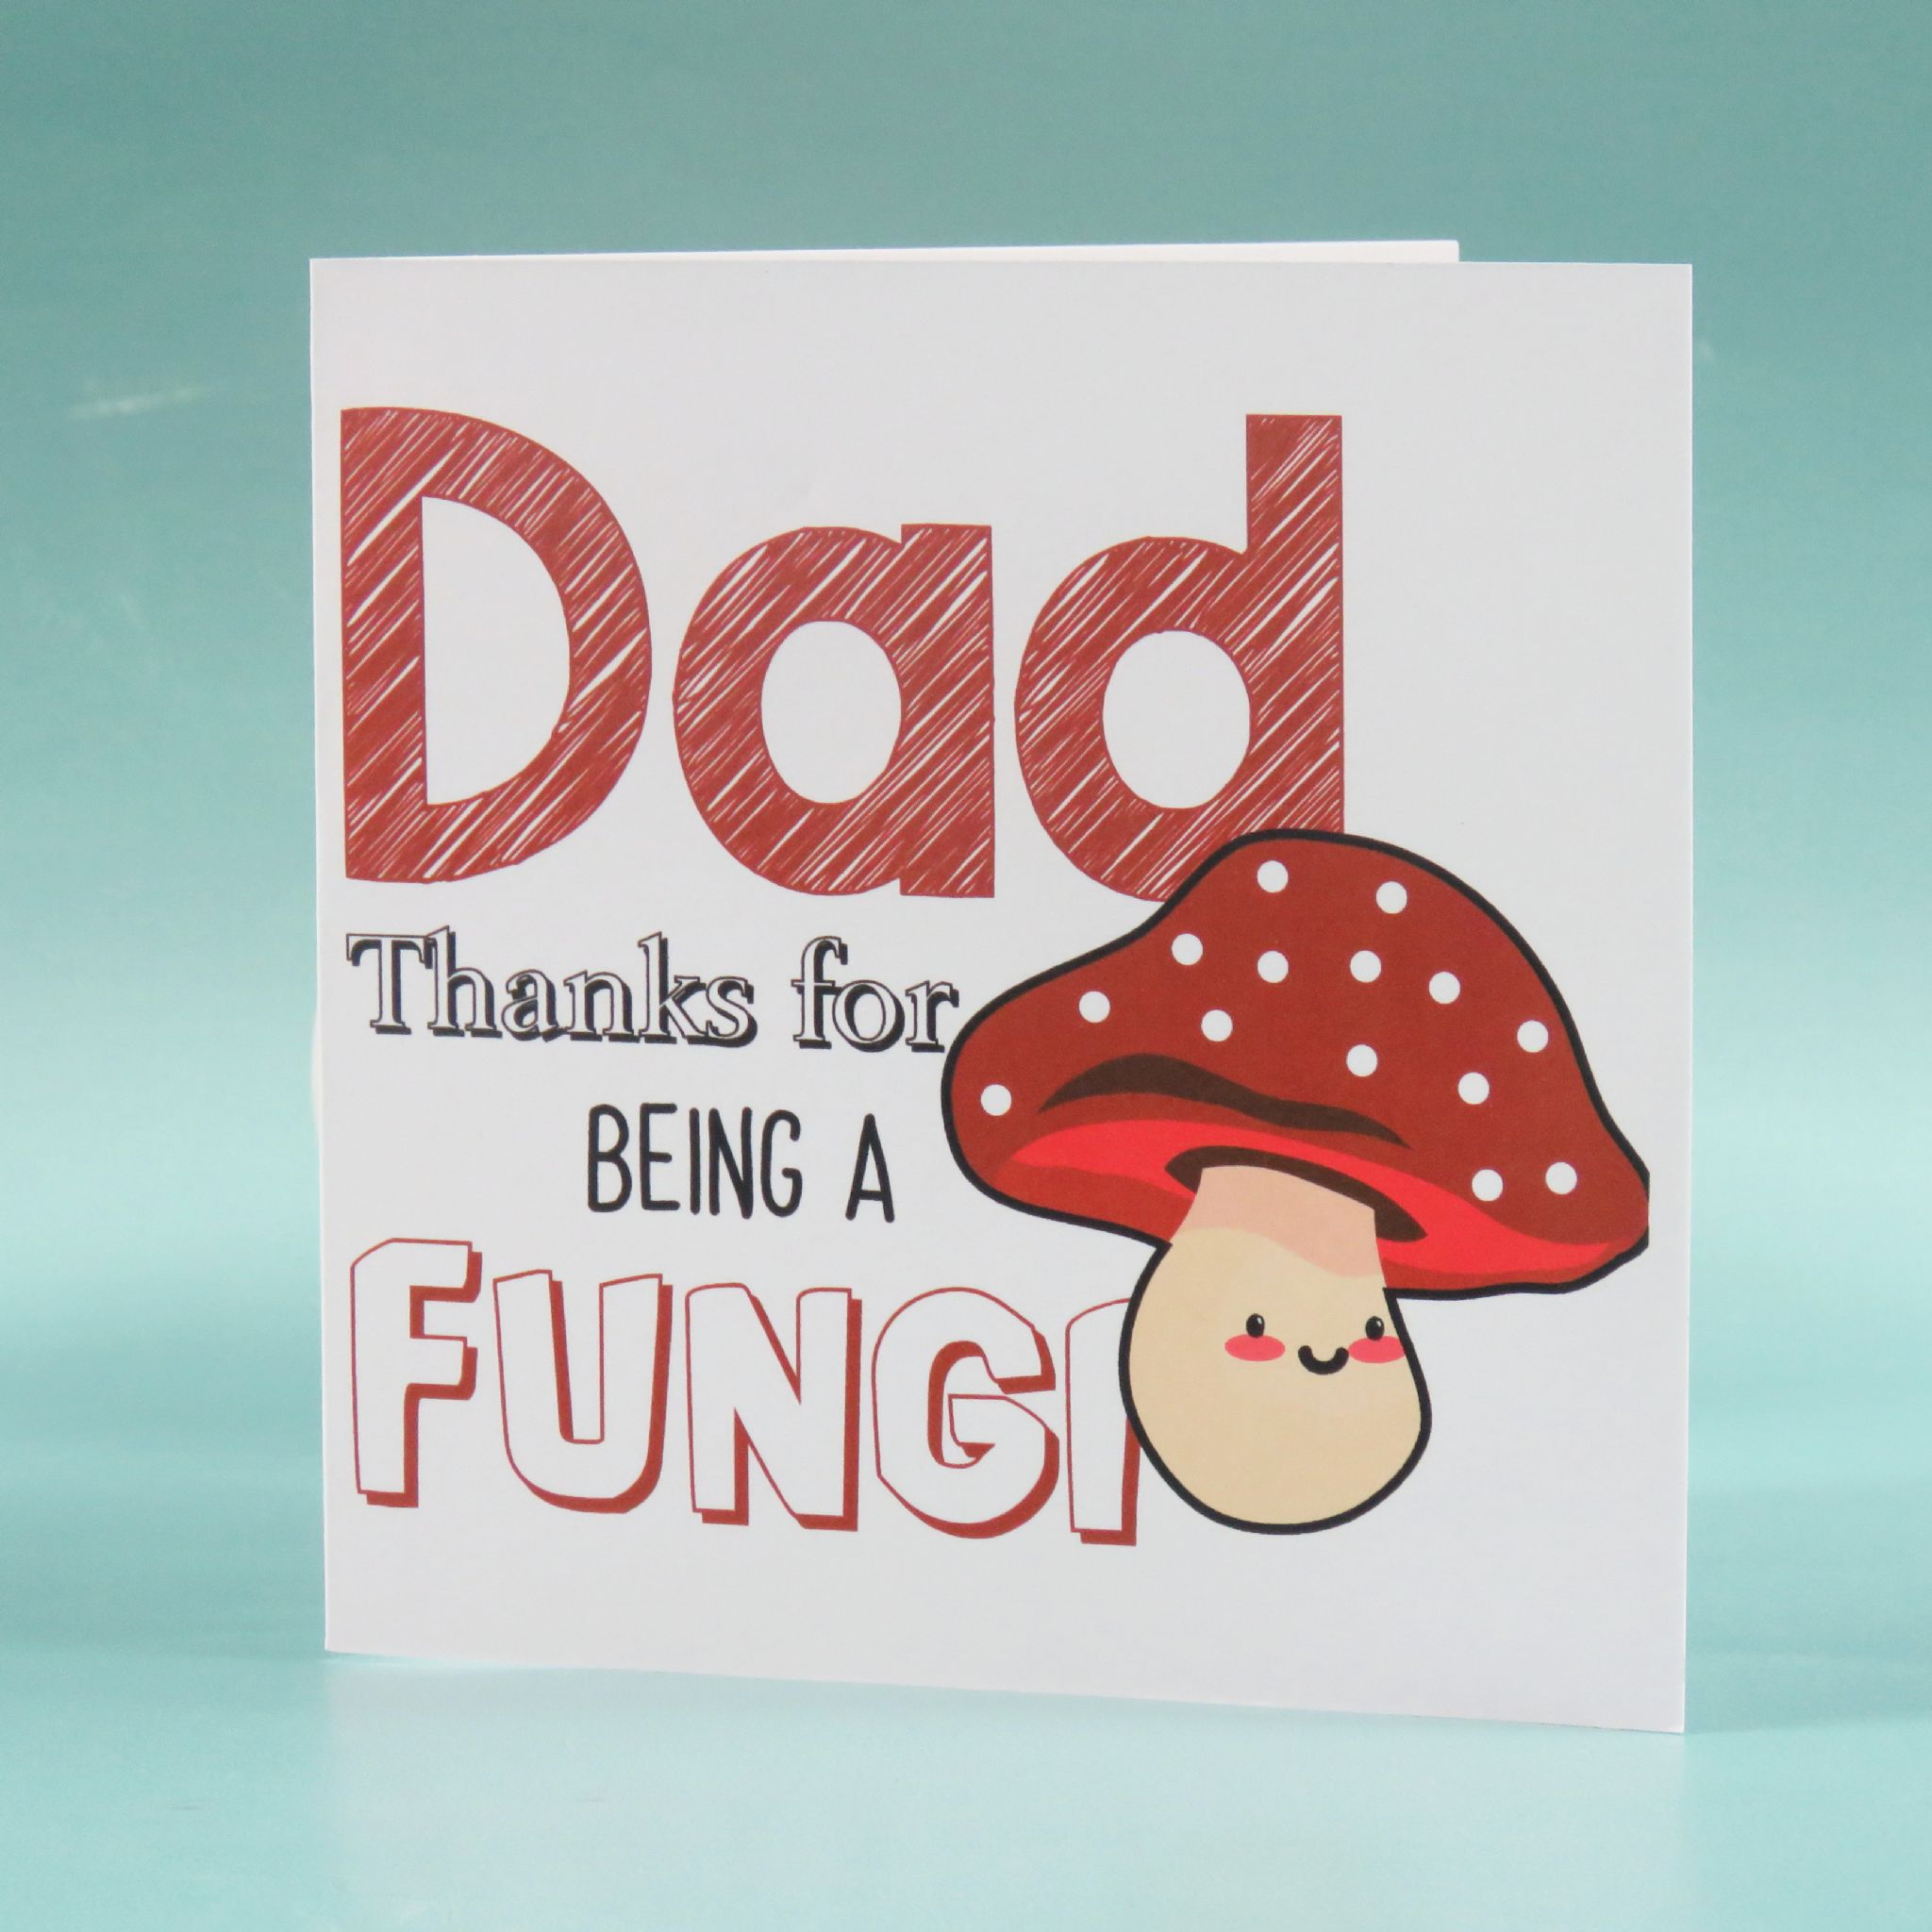 Dad mushroom card thanks for being a fungi humour fathers day dad mushroom card thanks for being a fungi humour fathers day birthday card m4hsunfo